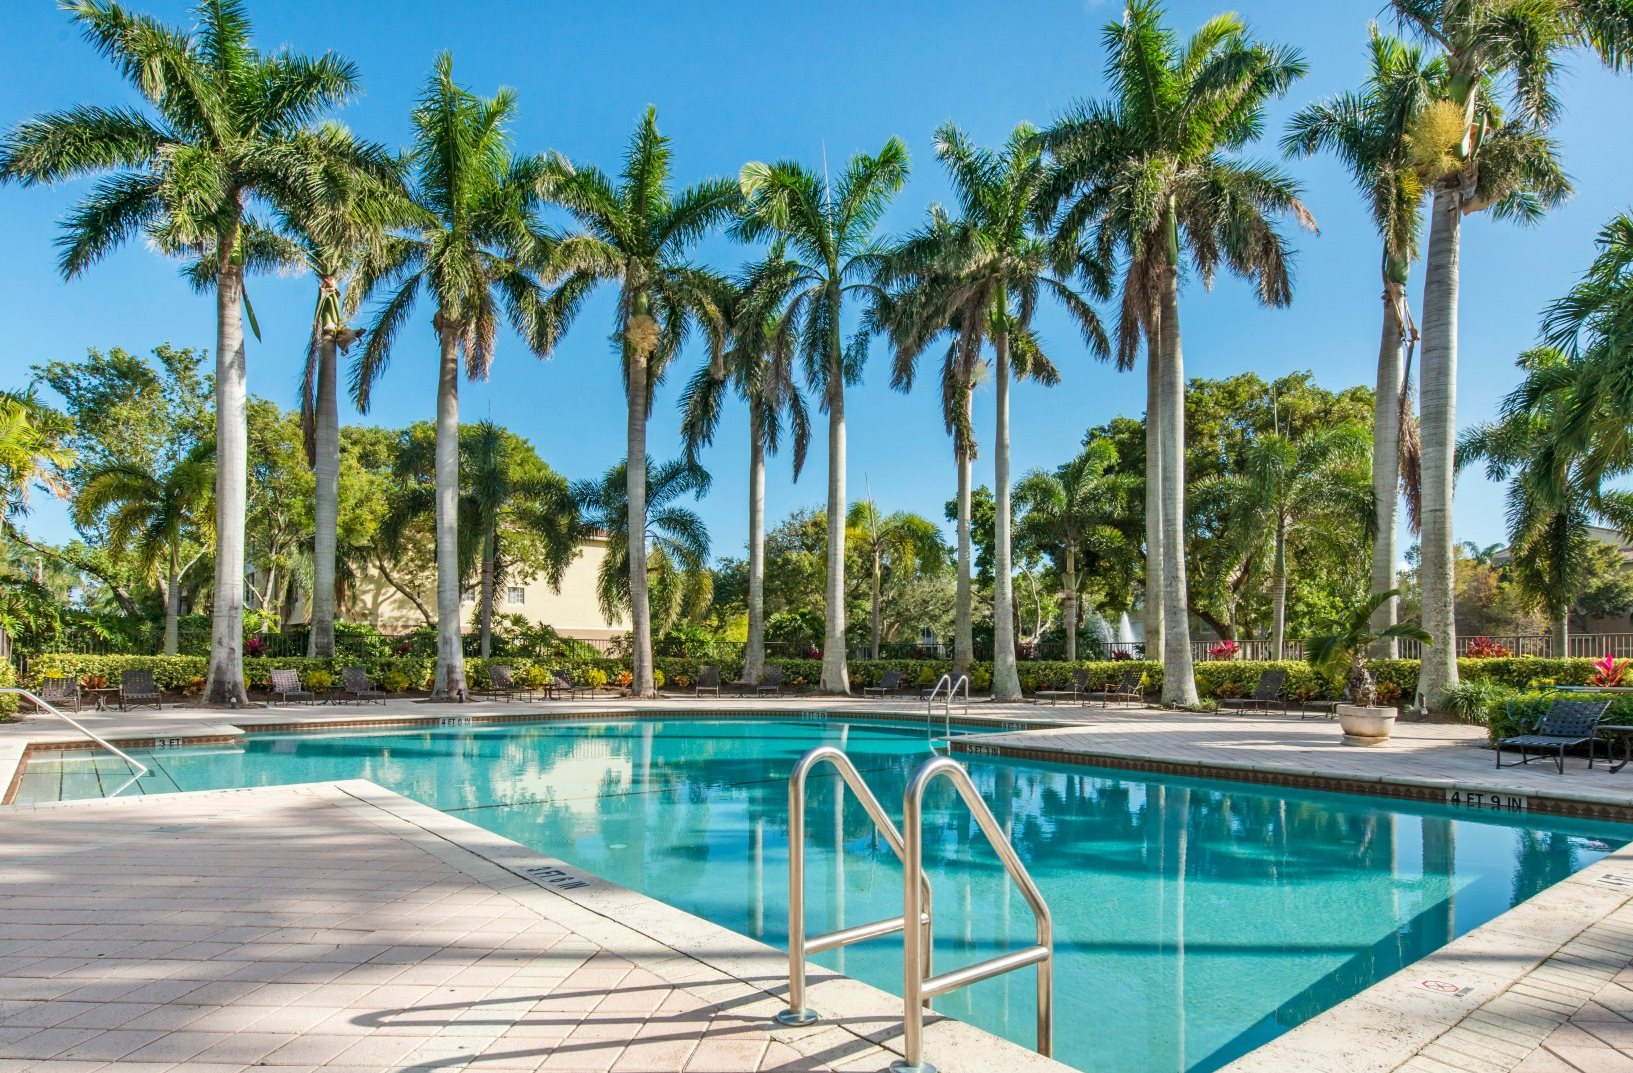 The cove at boynton beach apartments apartments in 1 bedroom apartments in boynton beach fl